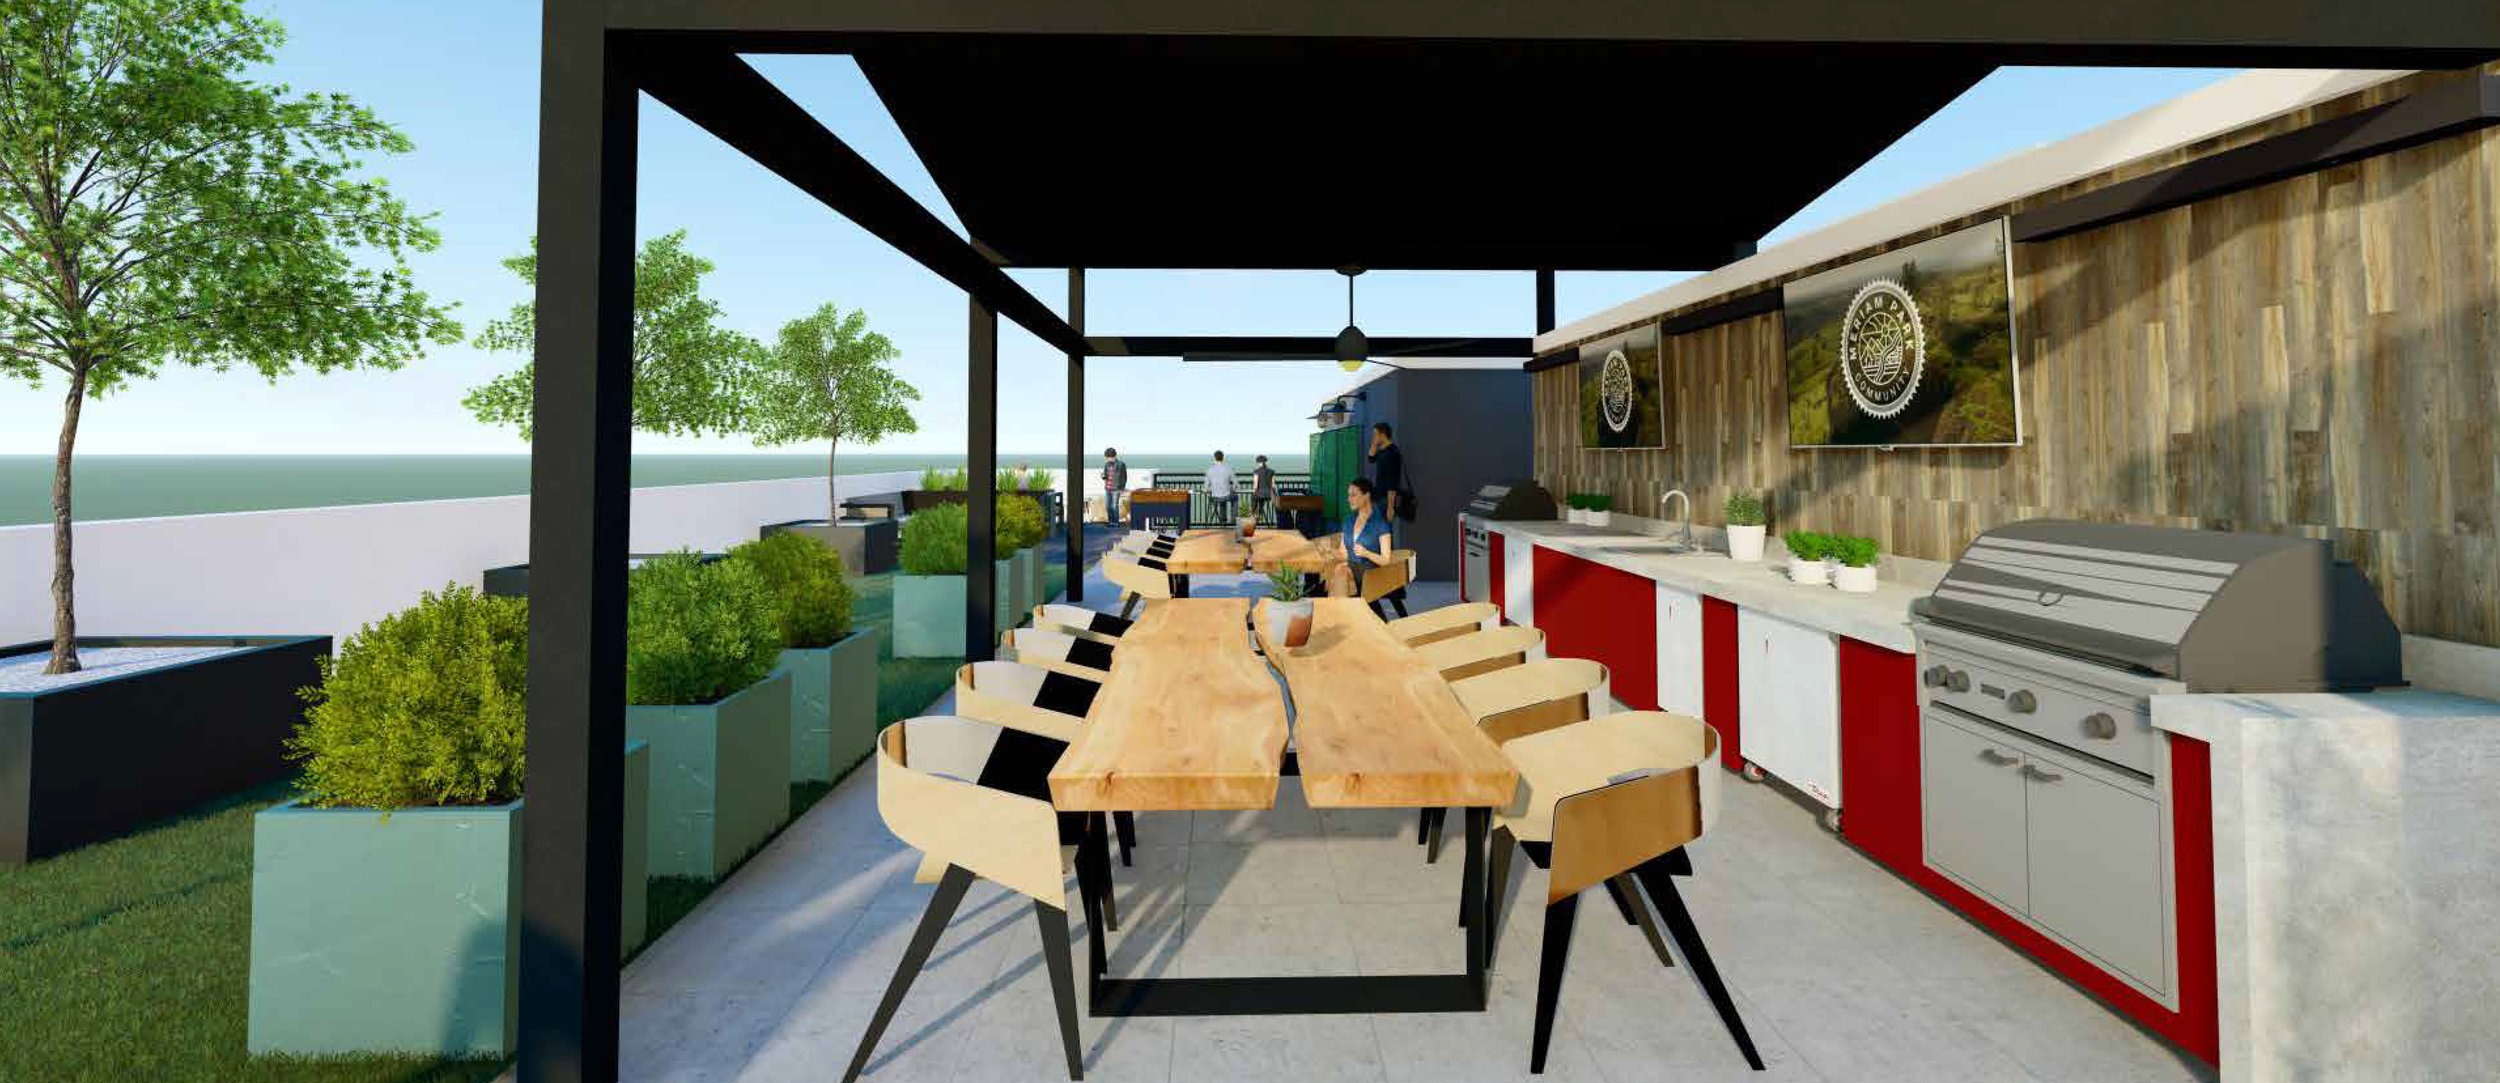 Roof Terrace | Kitchen + Dining